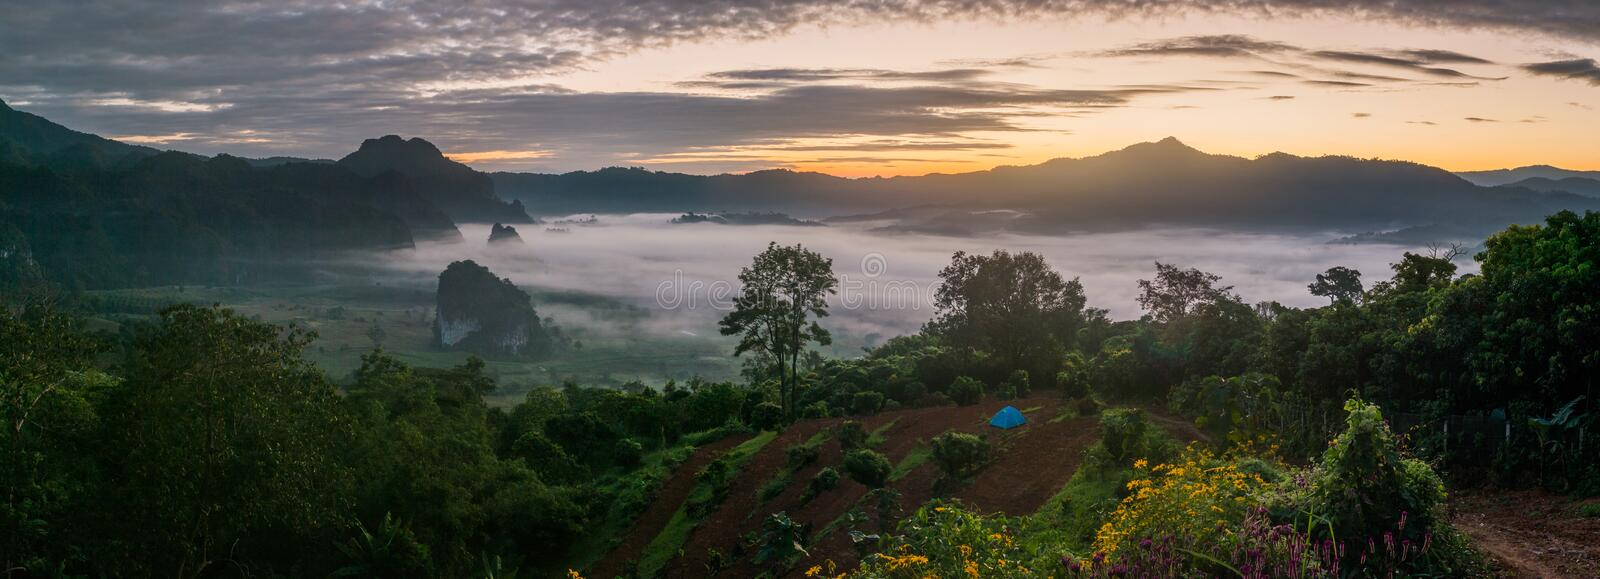 Sunrise and The Mist with Mountain Background in the morning, La. Ndscape at Phu Langka, Payao Province, Thailand royalty free stock images